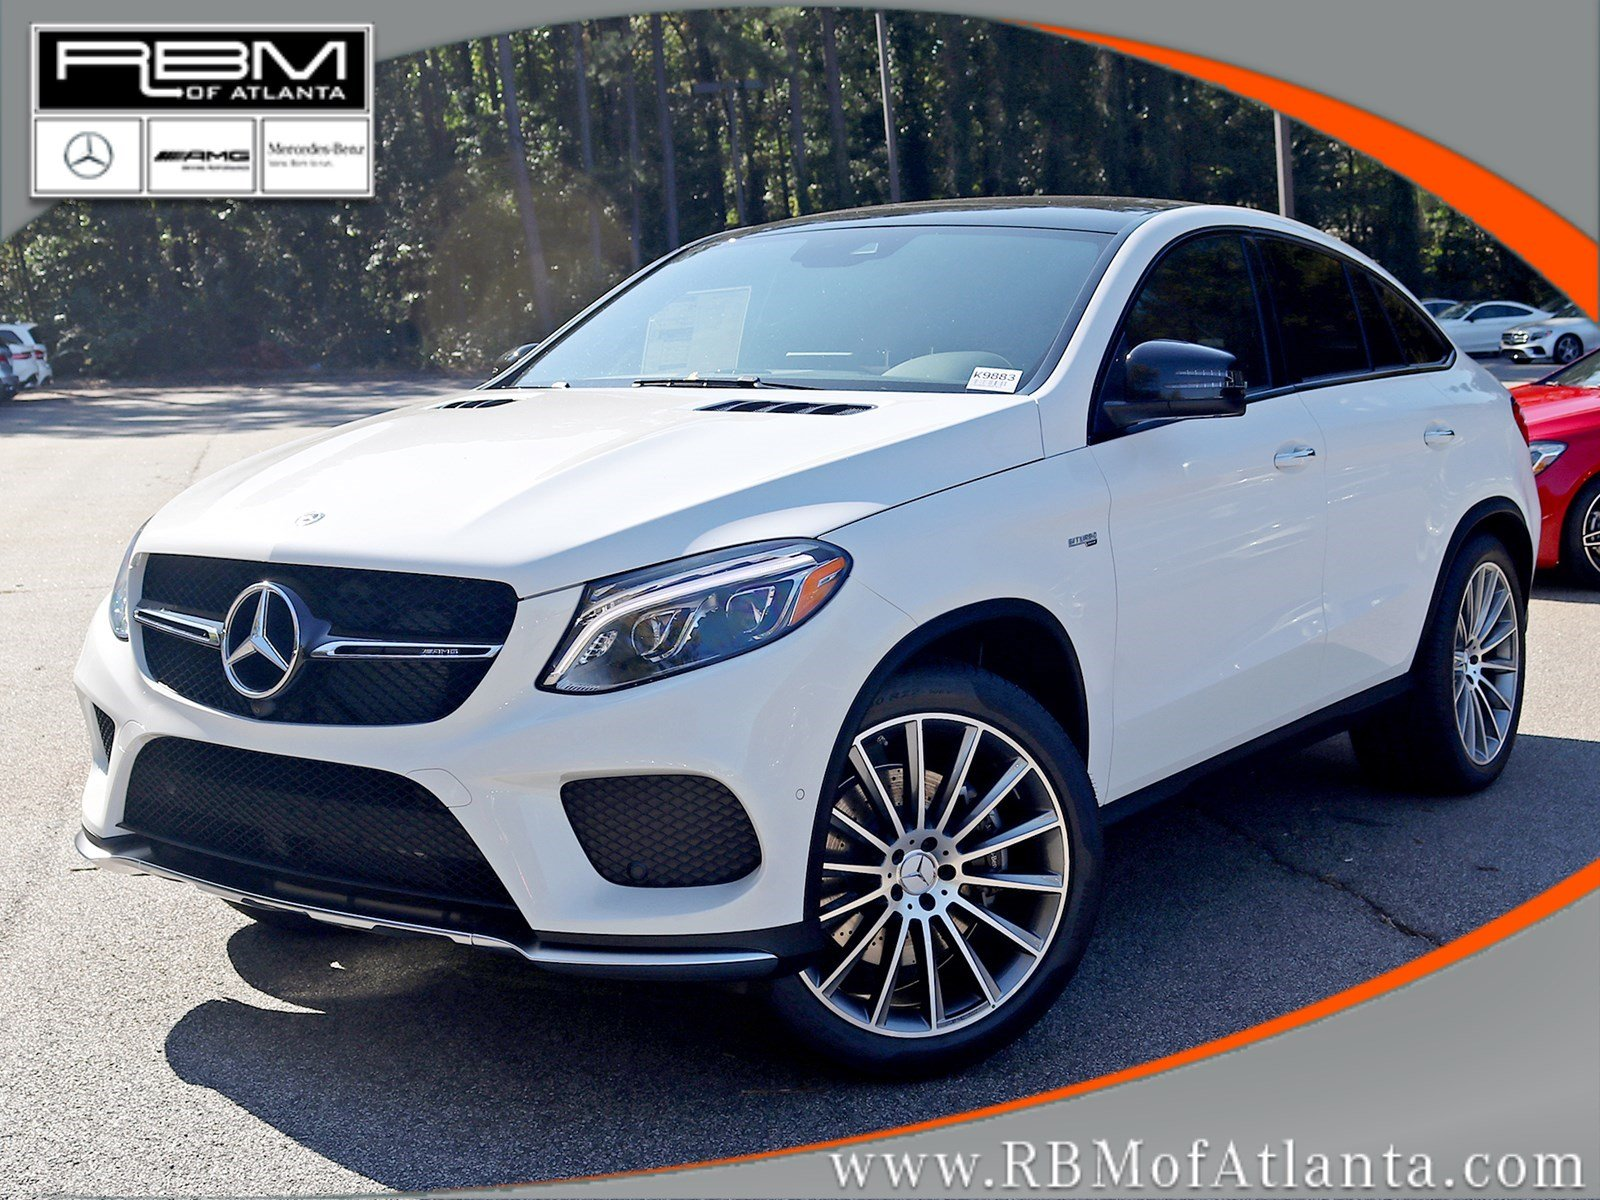 new 2018 mercedes benz gle gle 43 amg coupe coupe in atlanta k9883 rbm of atlanta. Black Bedroom Furniture Sets. Home Design Ideas